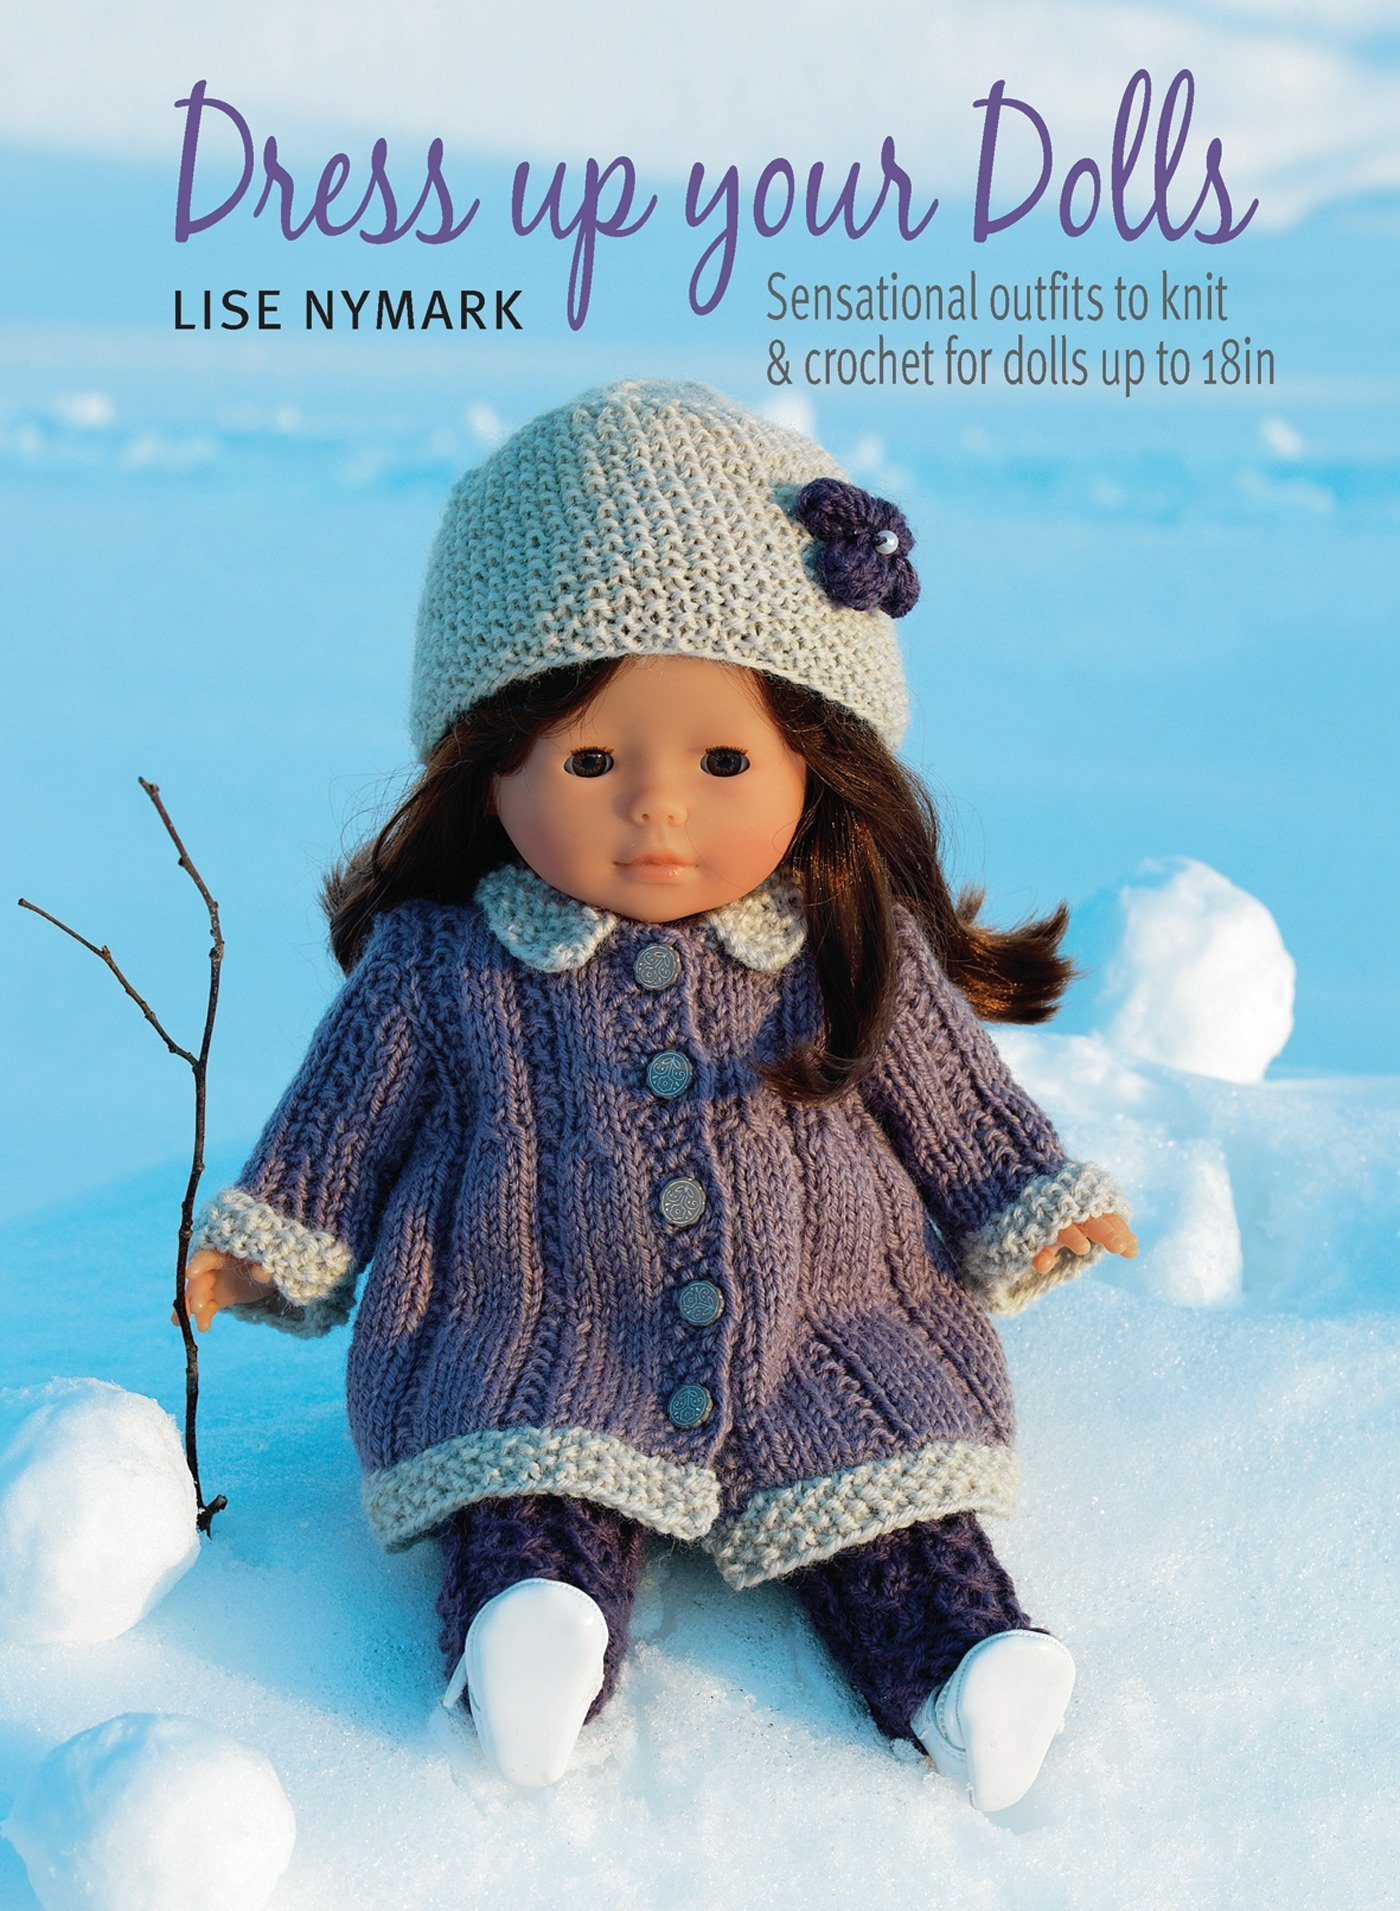 Amazon.com: Dress Up Your Dolls: Sensational outfits to knit ...